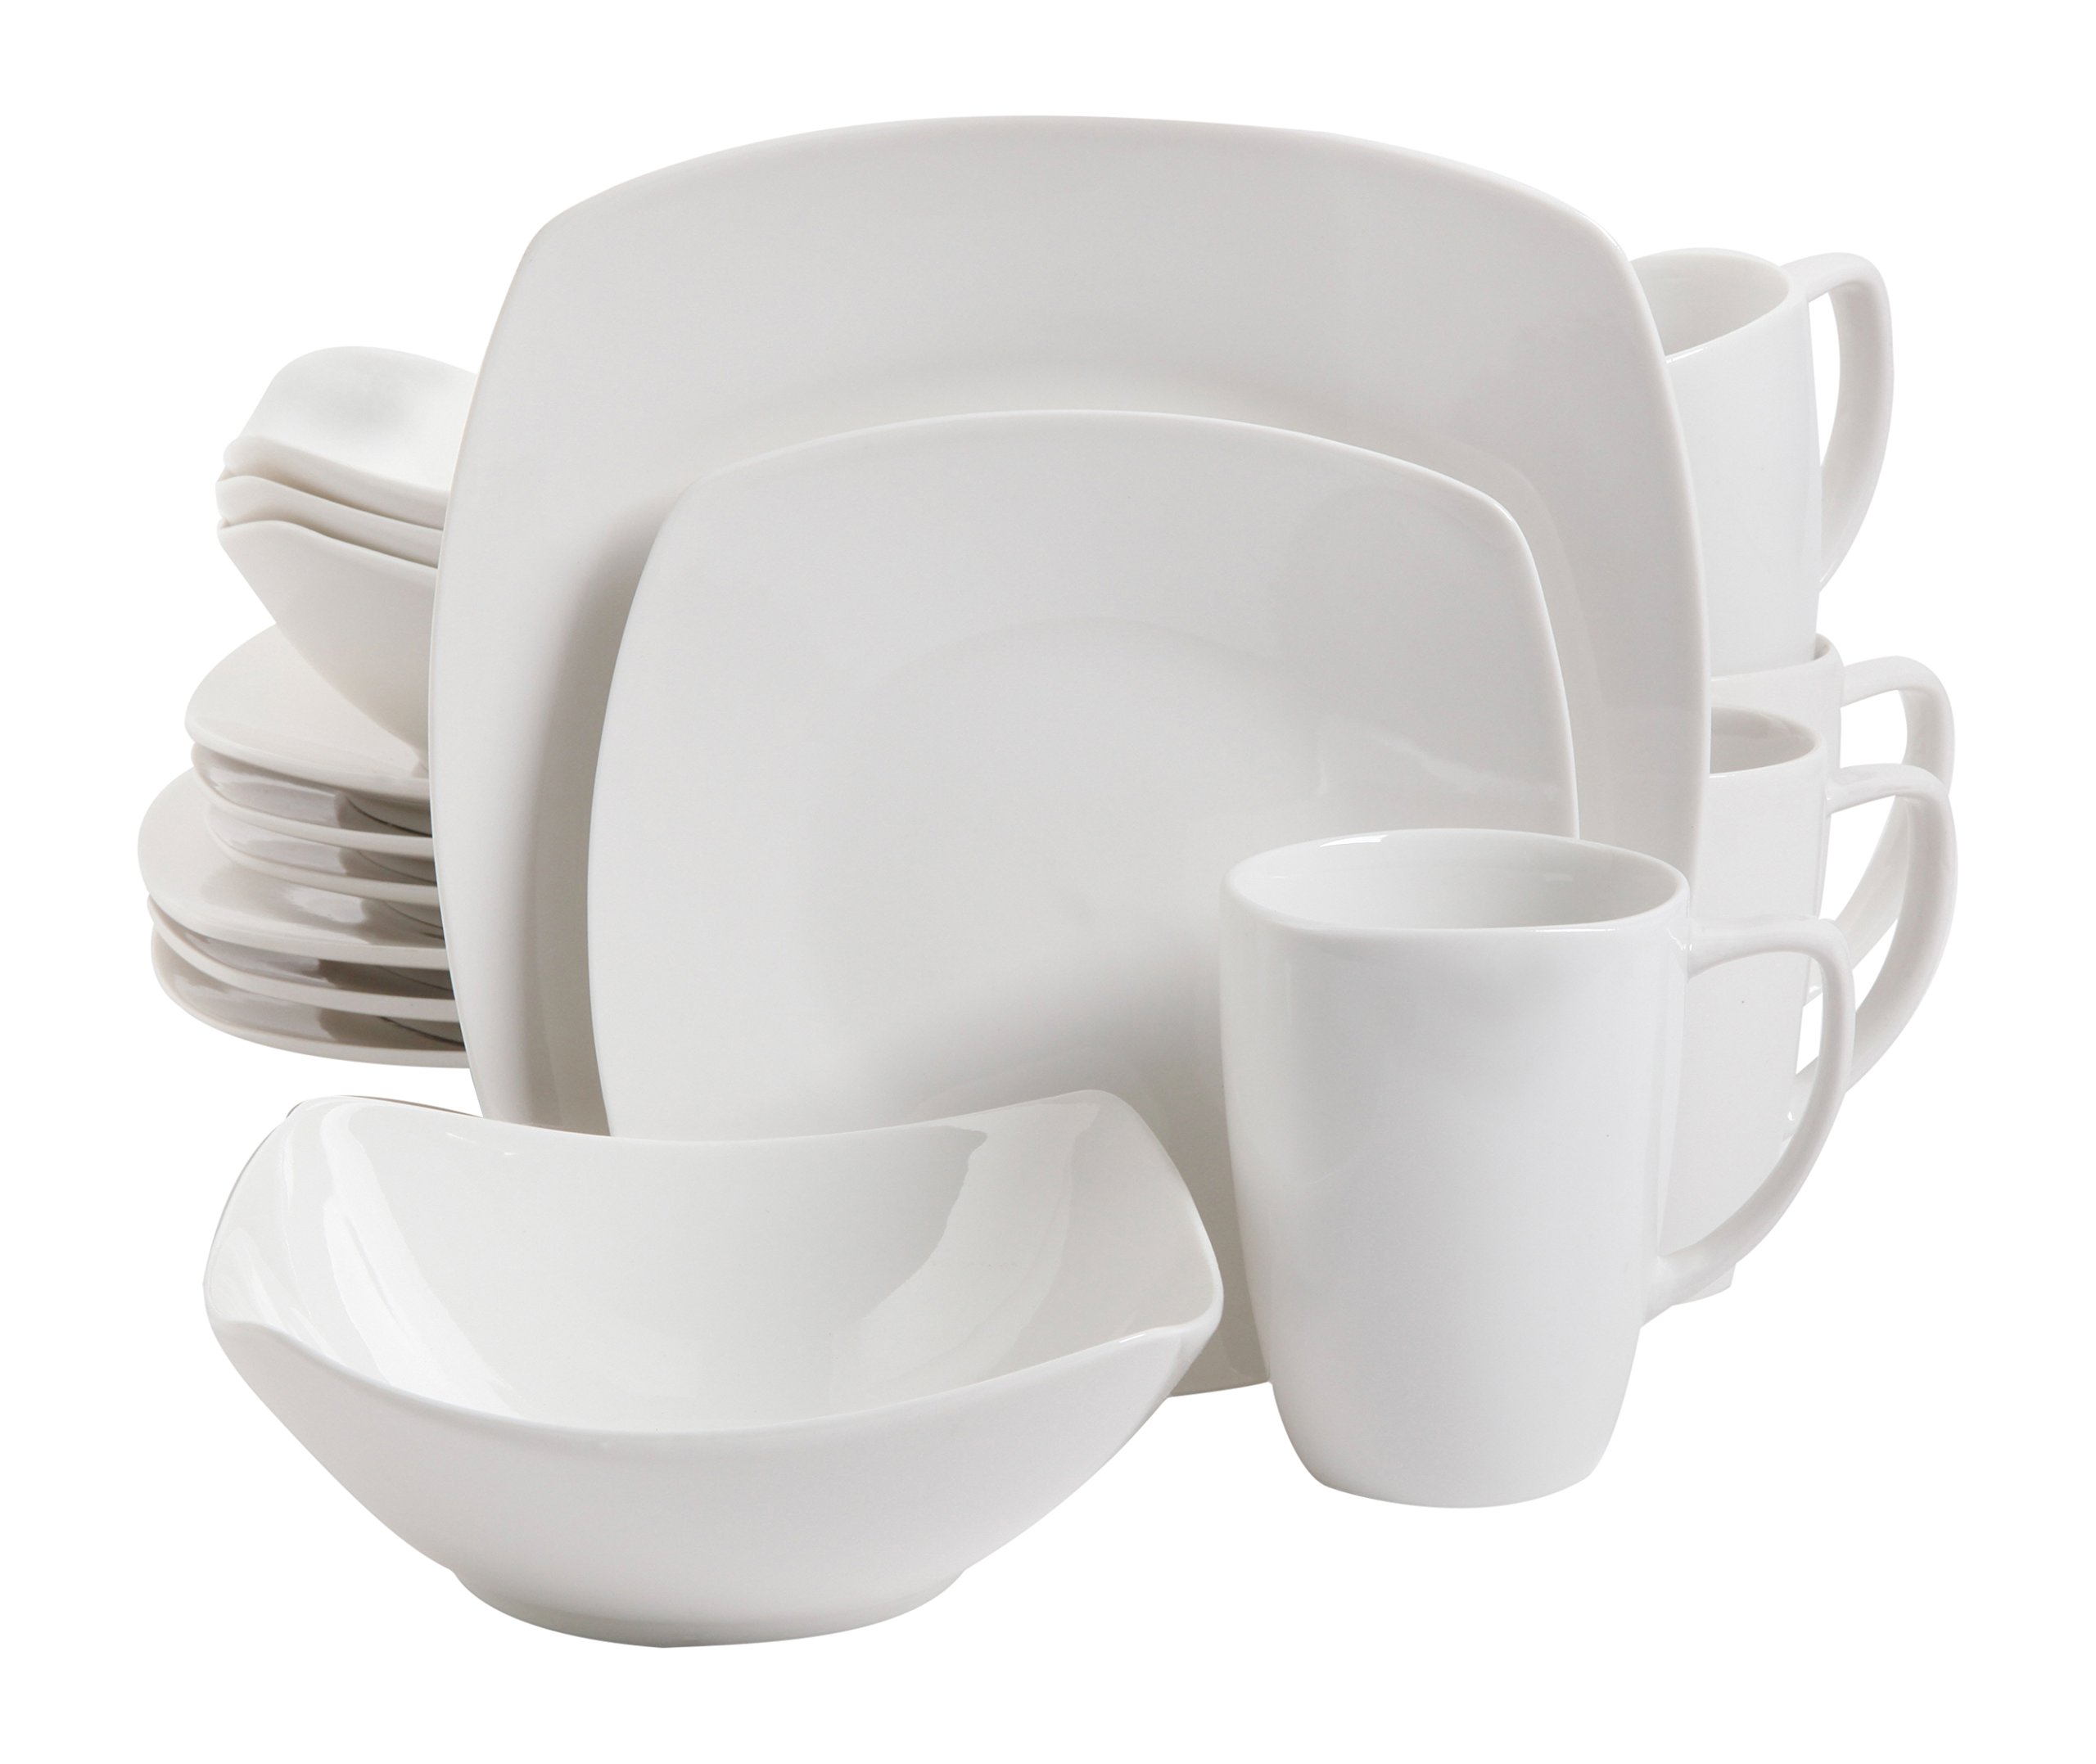 Gibson Home 102539.16RM Zen Buffetware 16 Piece Dinnerware Set, White by Gibson Home (Image #1)